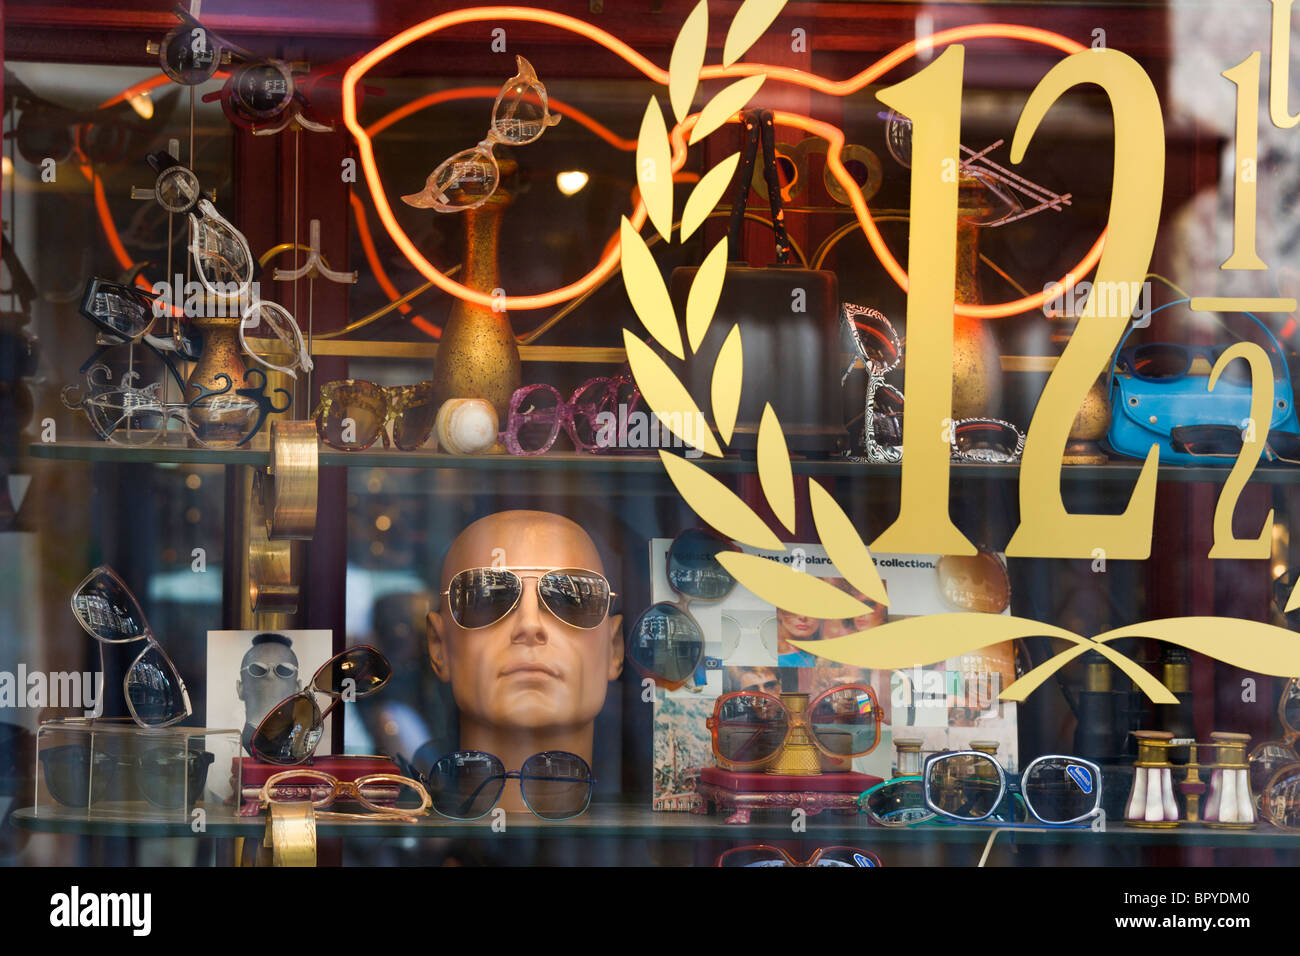 Amsterdam. Display window of The National Spectacle Museum and Shop in the famous Nine Little Streets shopping district. - Stock Image